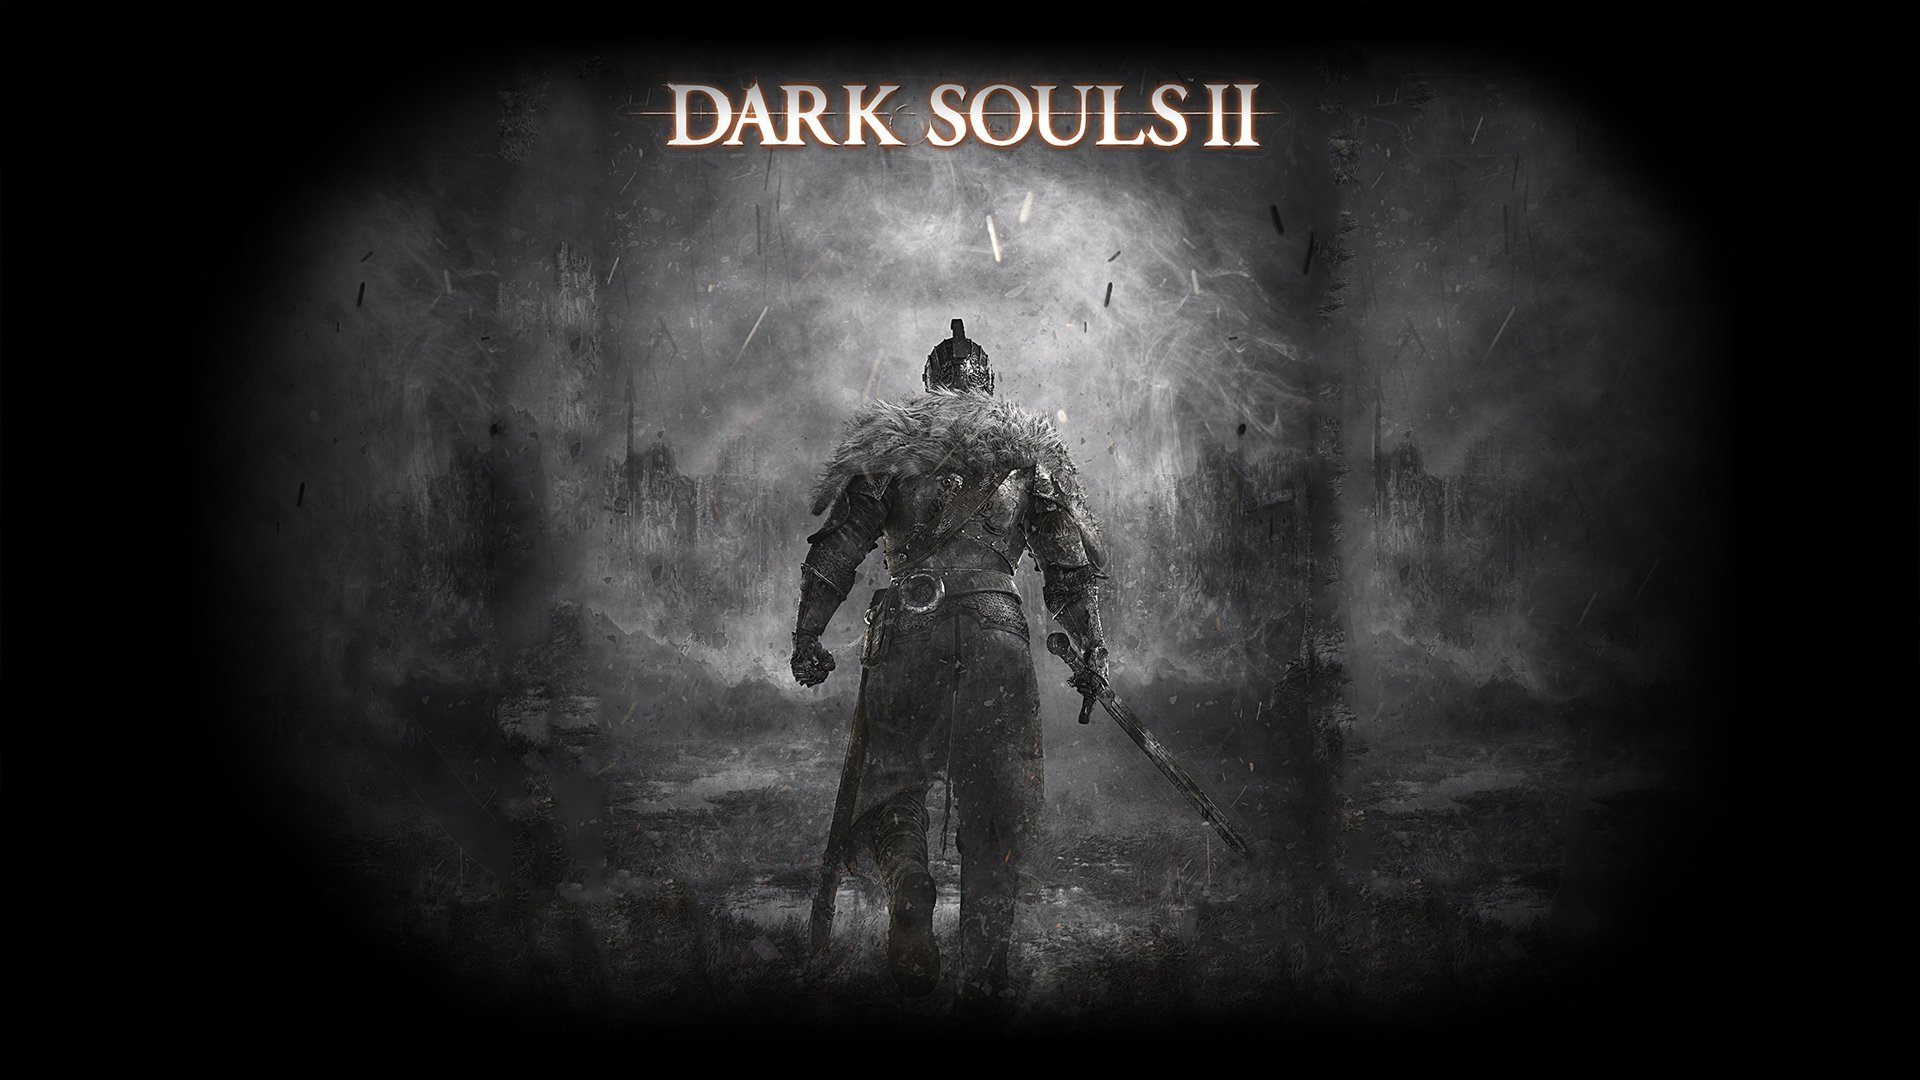 49 Dark Souls Wallpaper 1920x1080 On Wallpapersafari